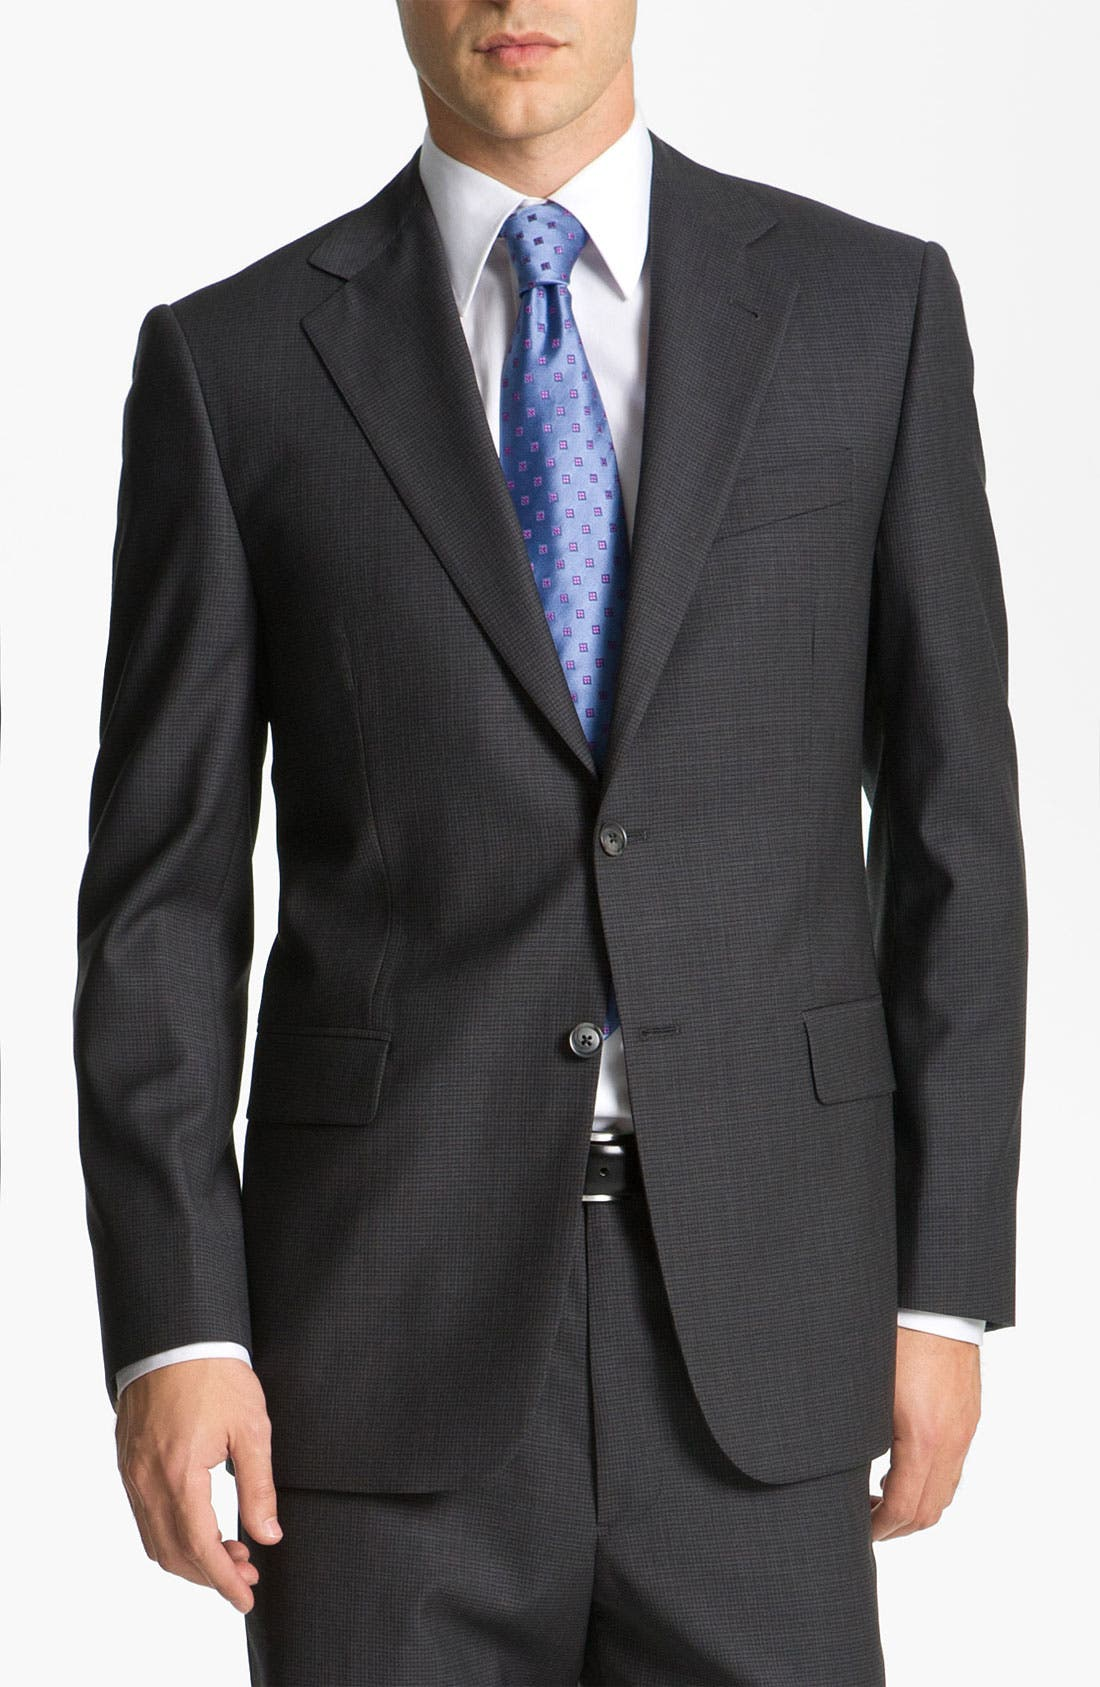 Alternate Image 1 Selected - Joseph Abboud 'Signature Silver' Check Suit